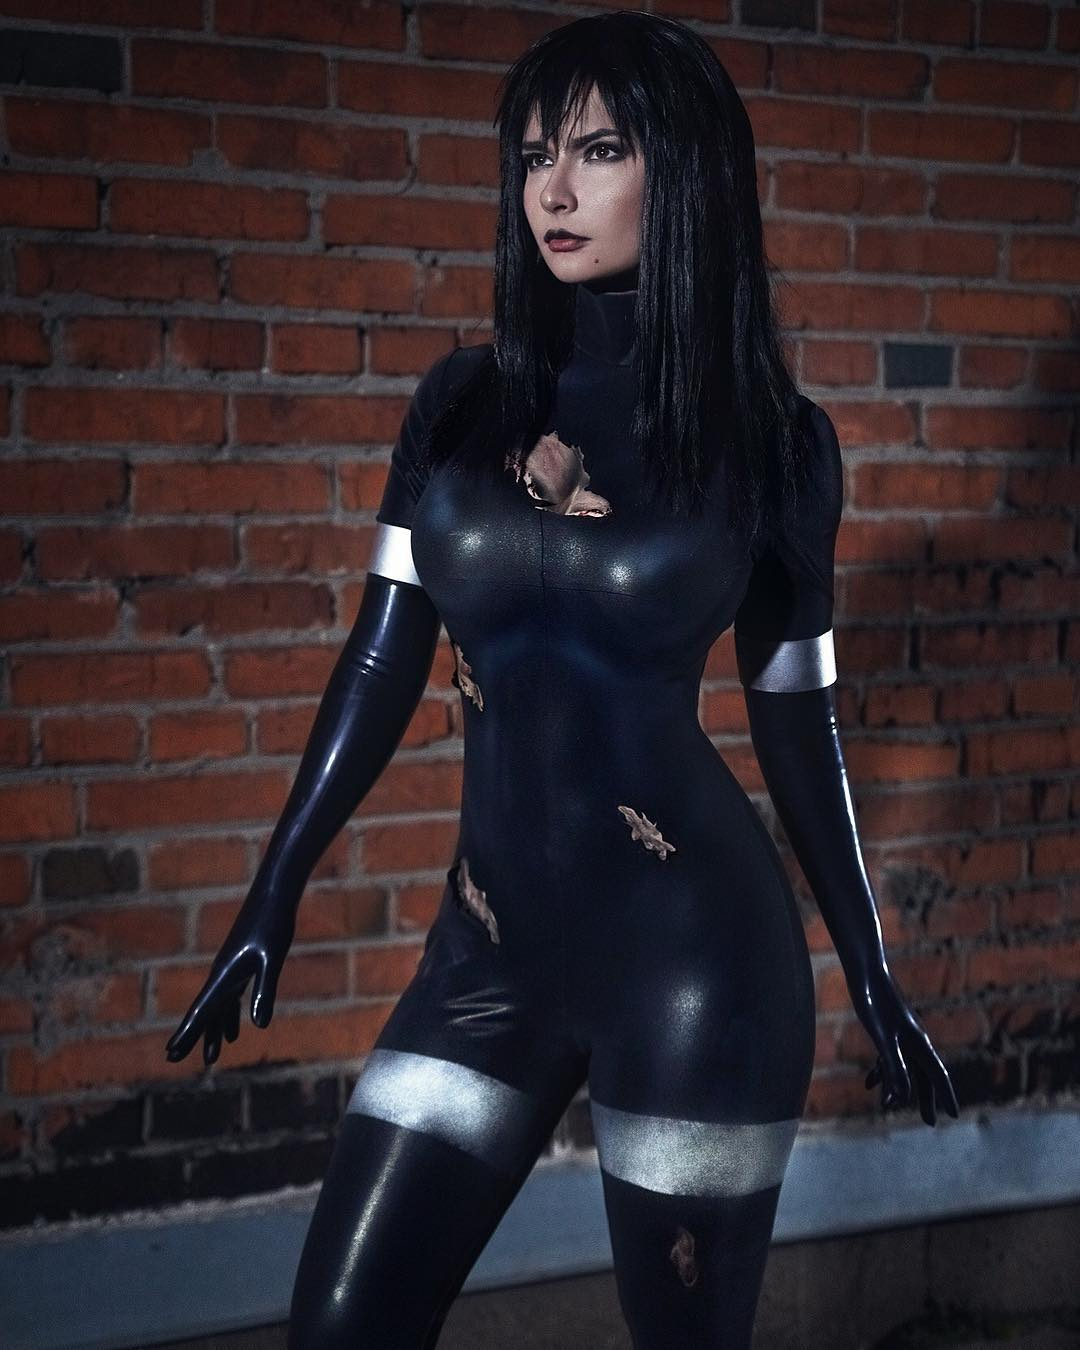 Jannet Incosplay Hot in Black Cosplay Dress